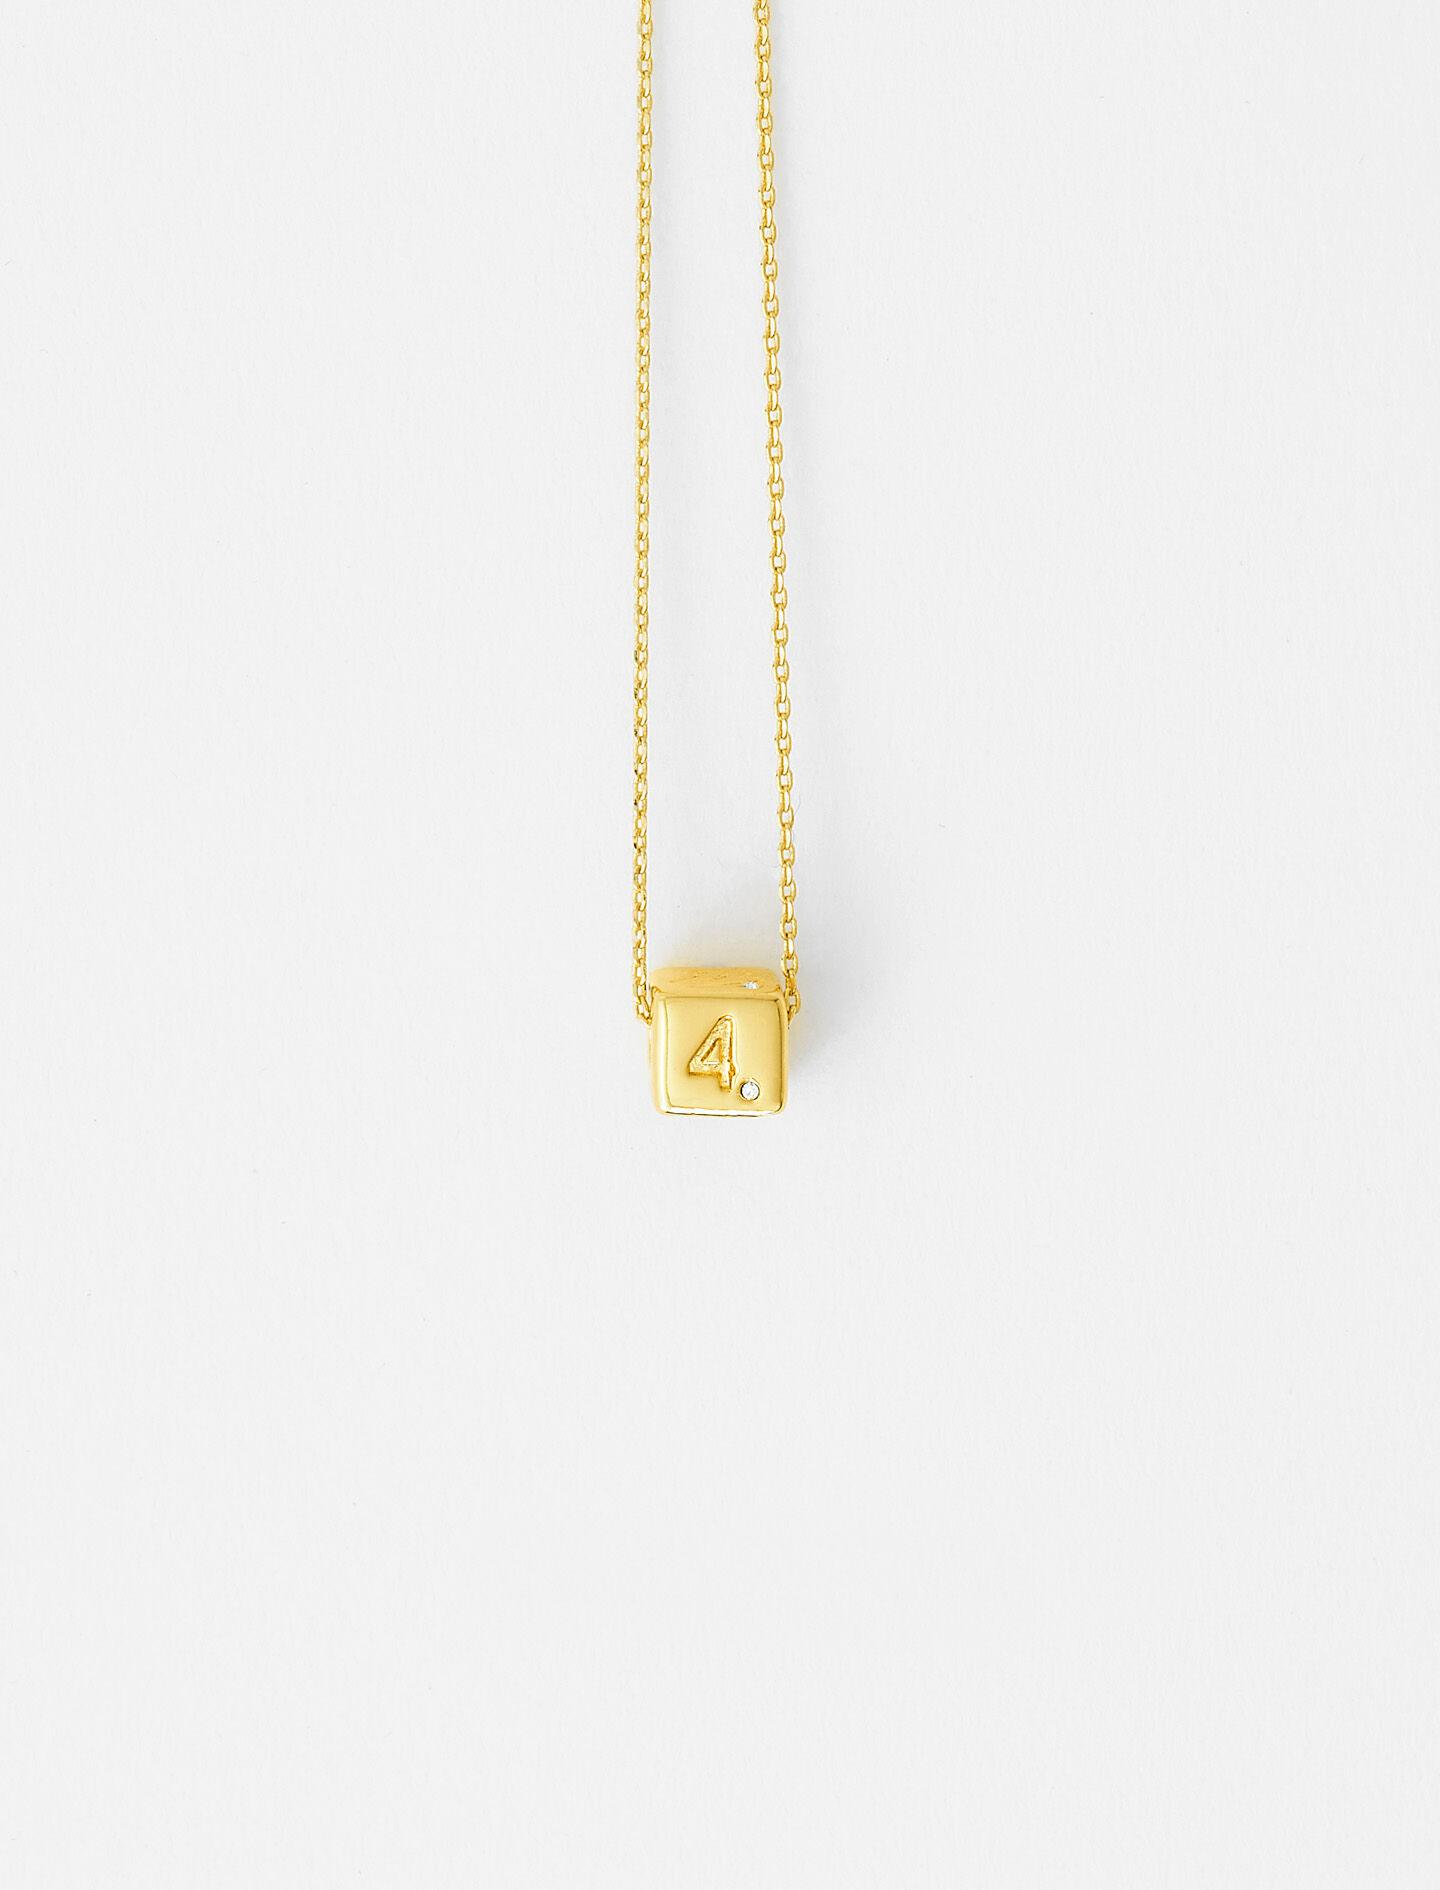 NUMBER 4 DICE NECKLACE